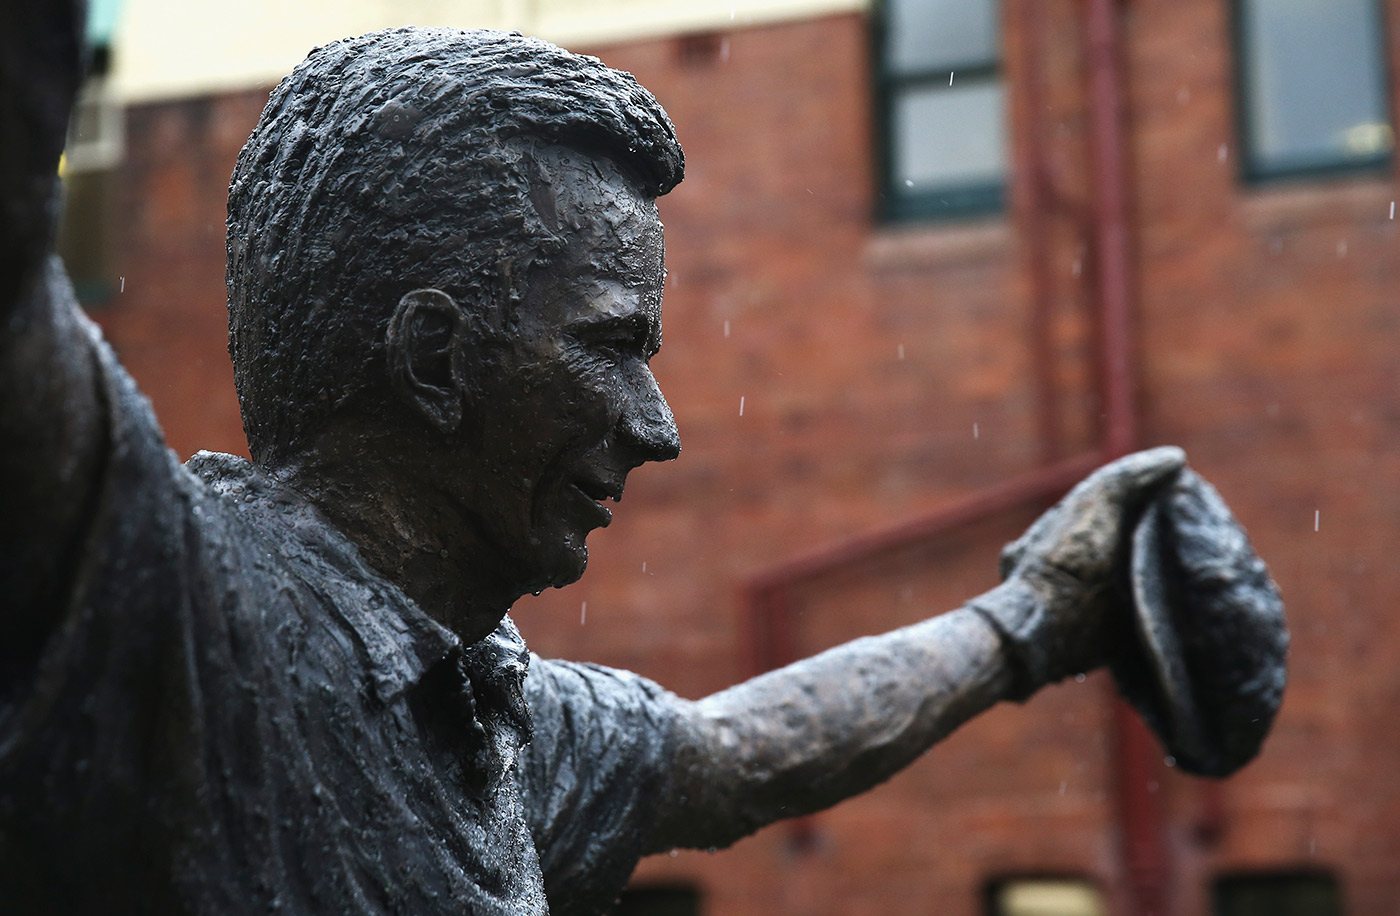 Steve Waugh's statue marked the 10,000 Test runs milestone he reached in 2003